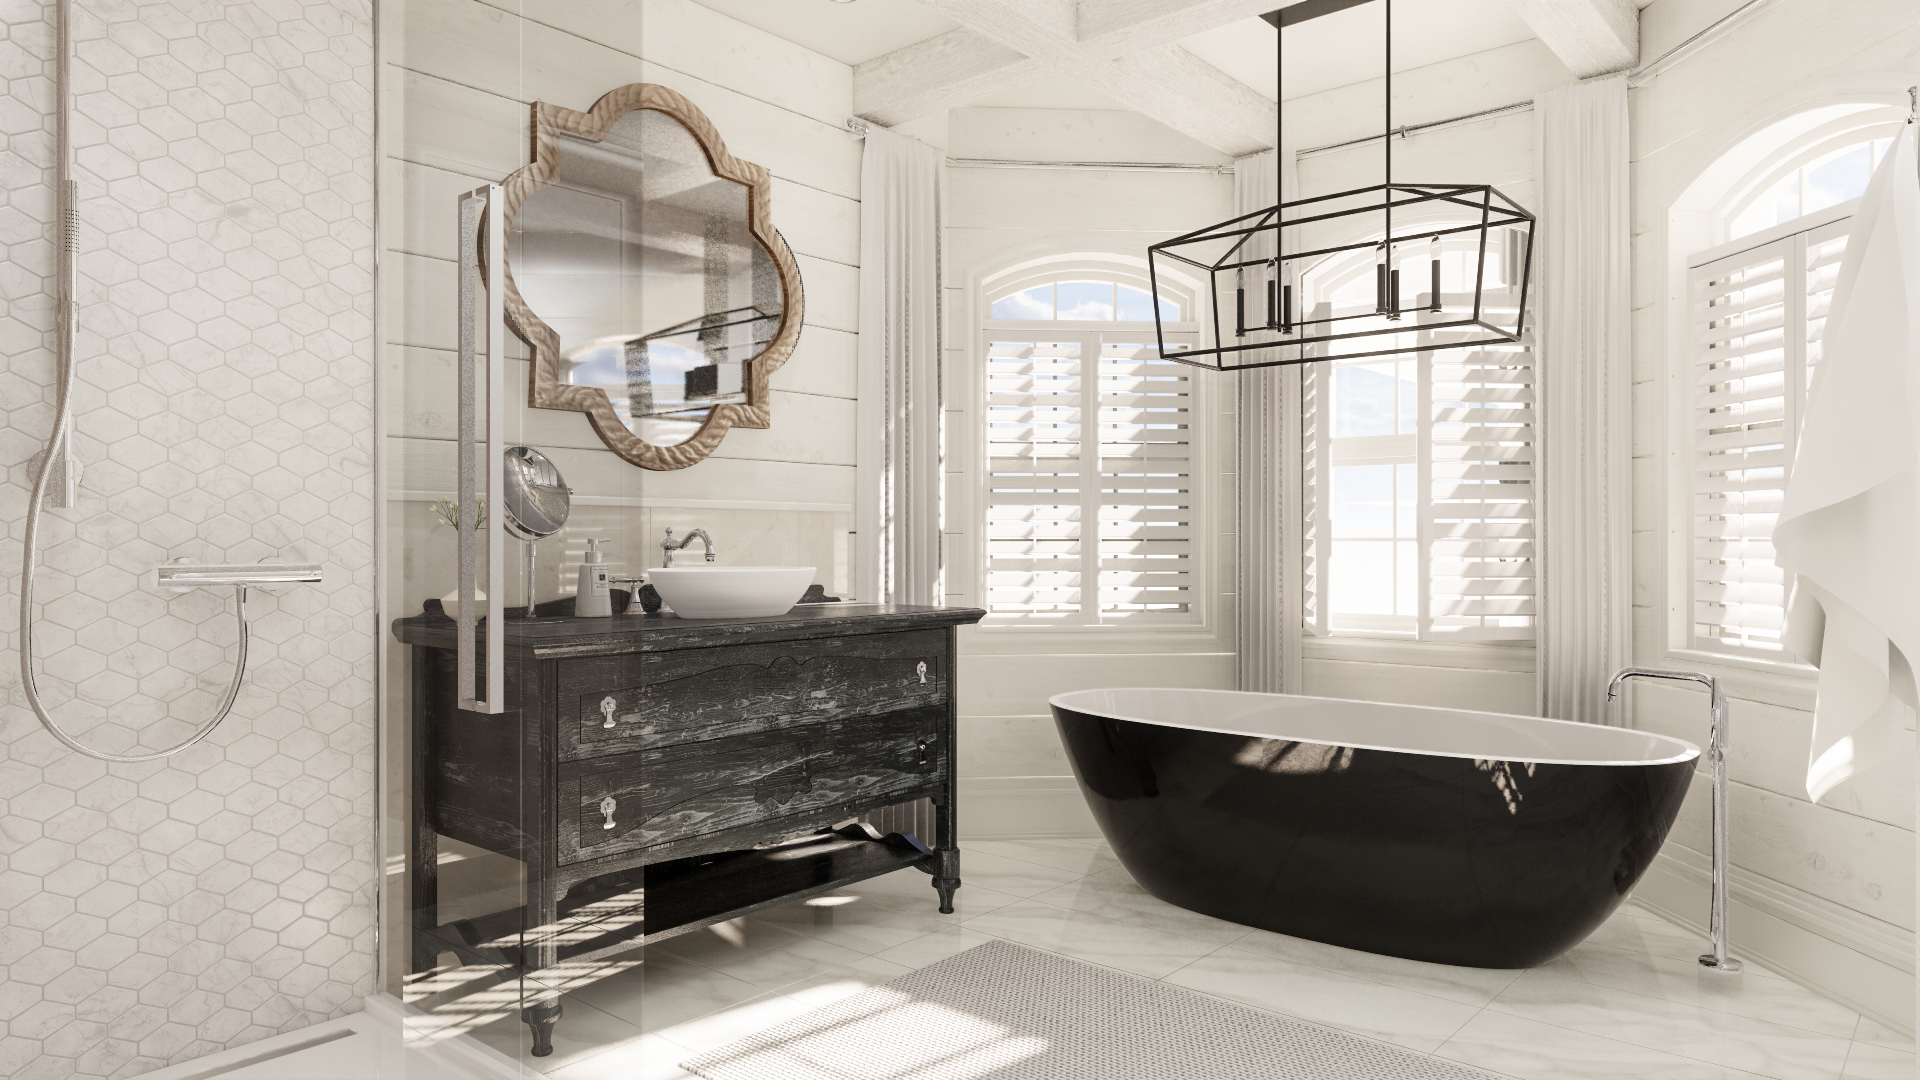 Artevo Bathroom Render